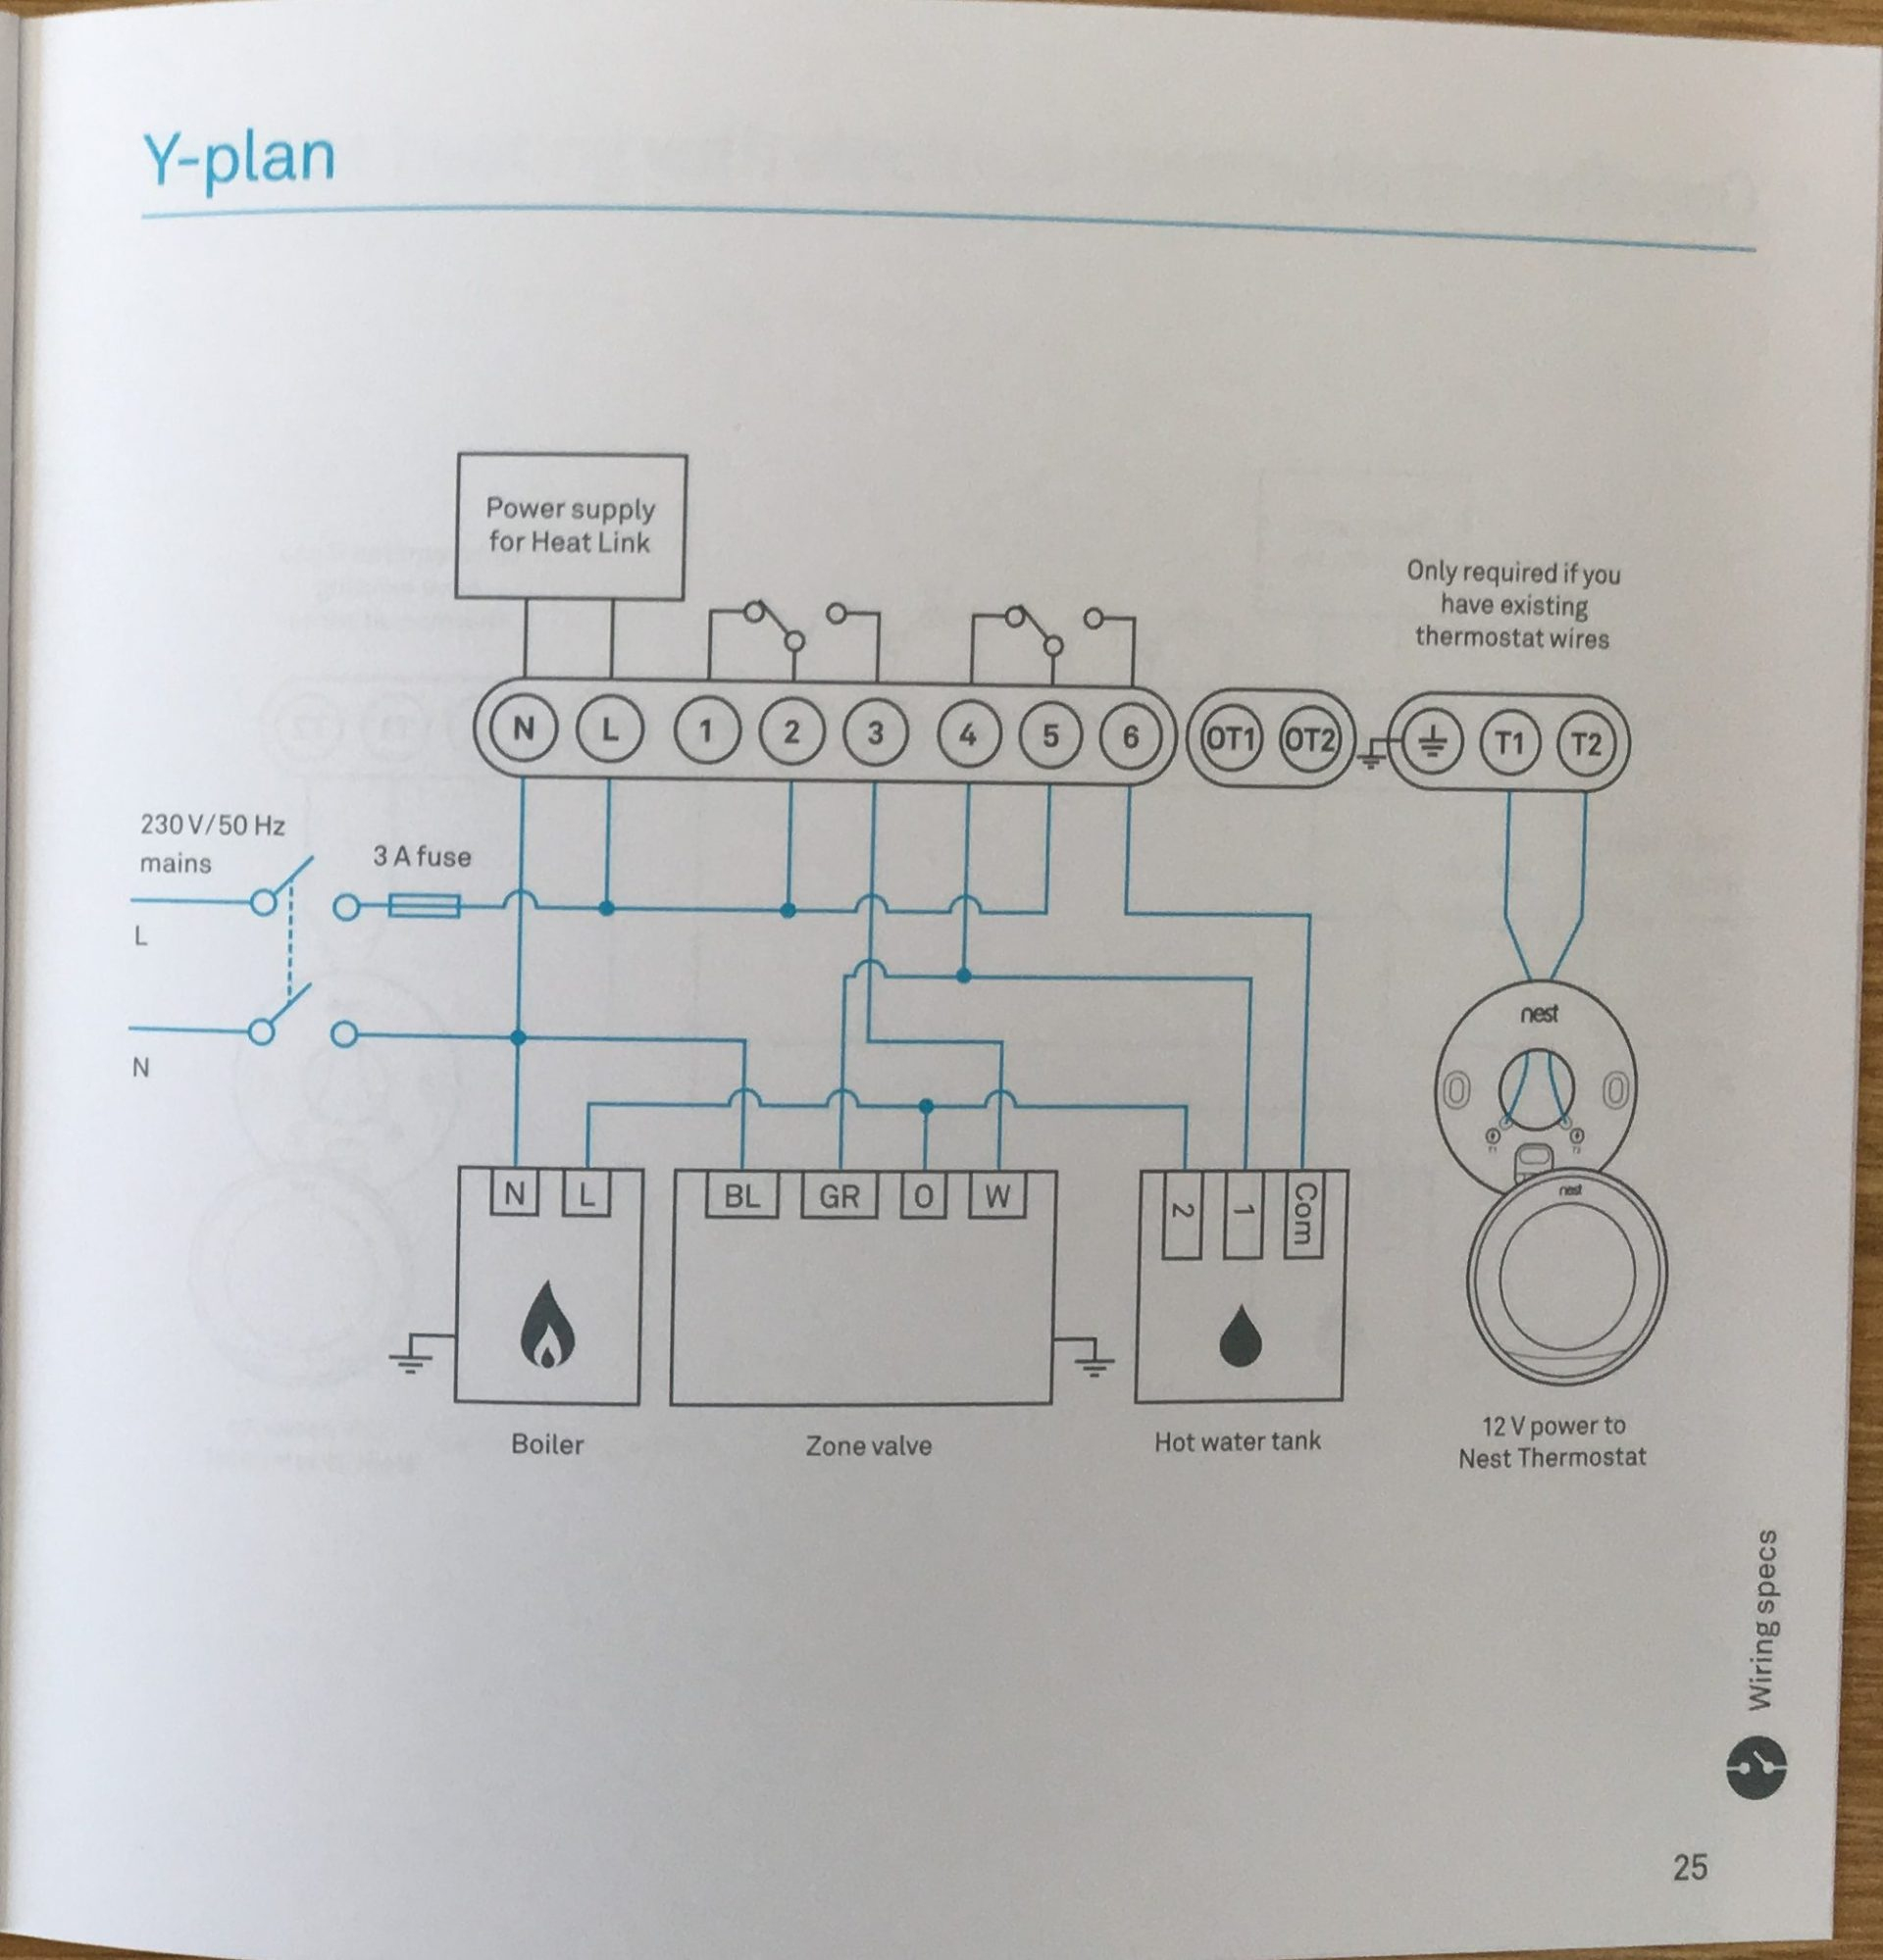 How To Install The Nest Learning Thermostat (3Rd Gen) In A Y-Plan - Nest Wiring Diagram Oil Furnace